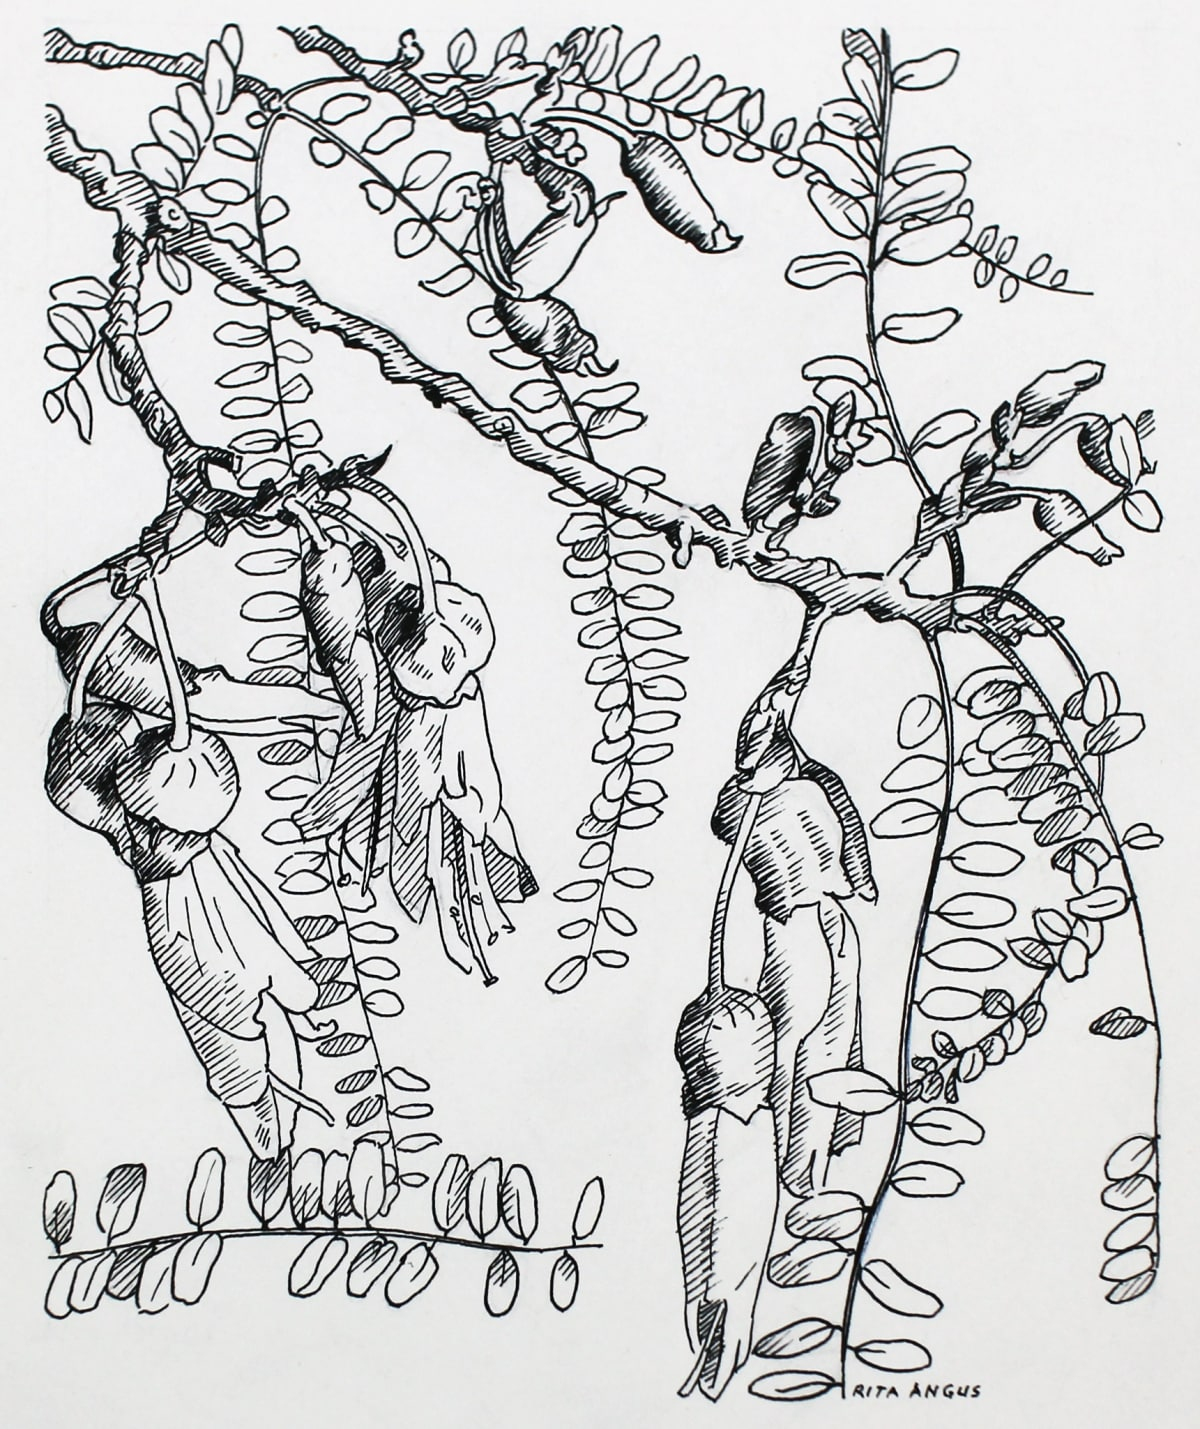 Rita Angus Untitled [Kowhai], 1950s Ink on paper 6.7 x 5.7 in 17 x 14.5 cm